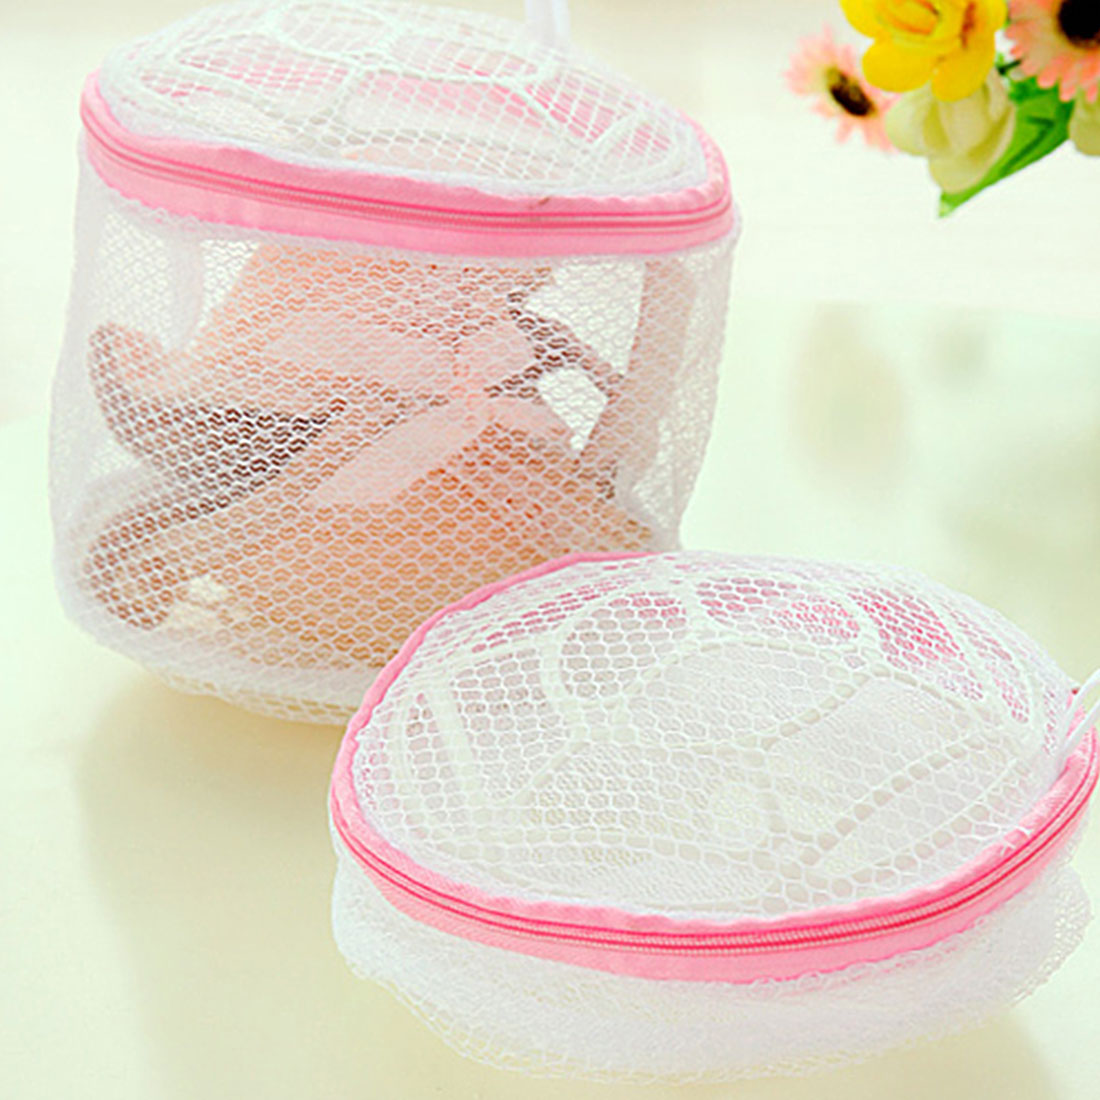 Hot Sale Foldable Household Cleaning Tools Bra Lingerie Clothes Washing for Women